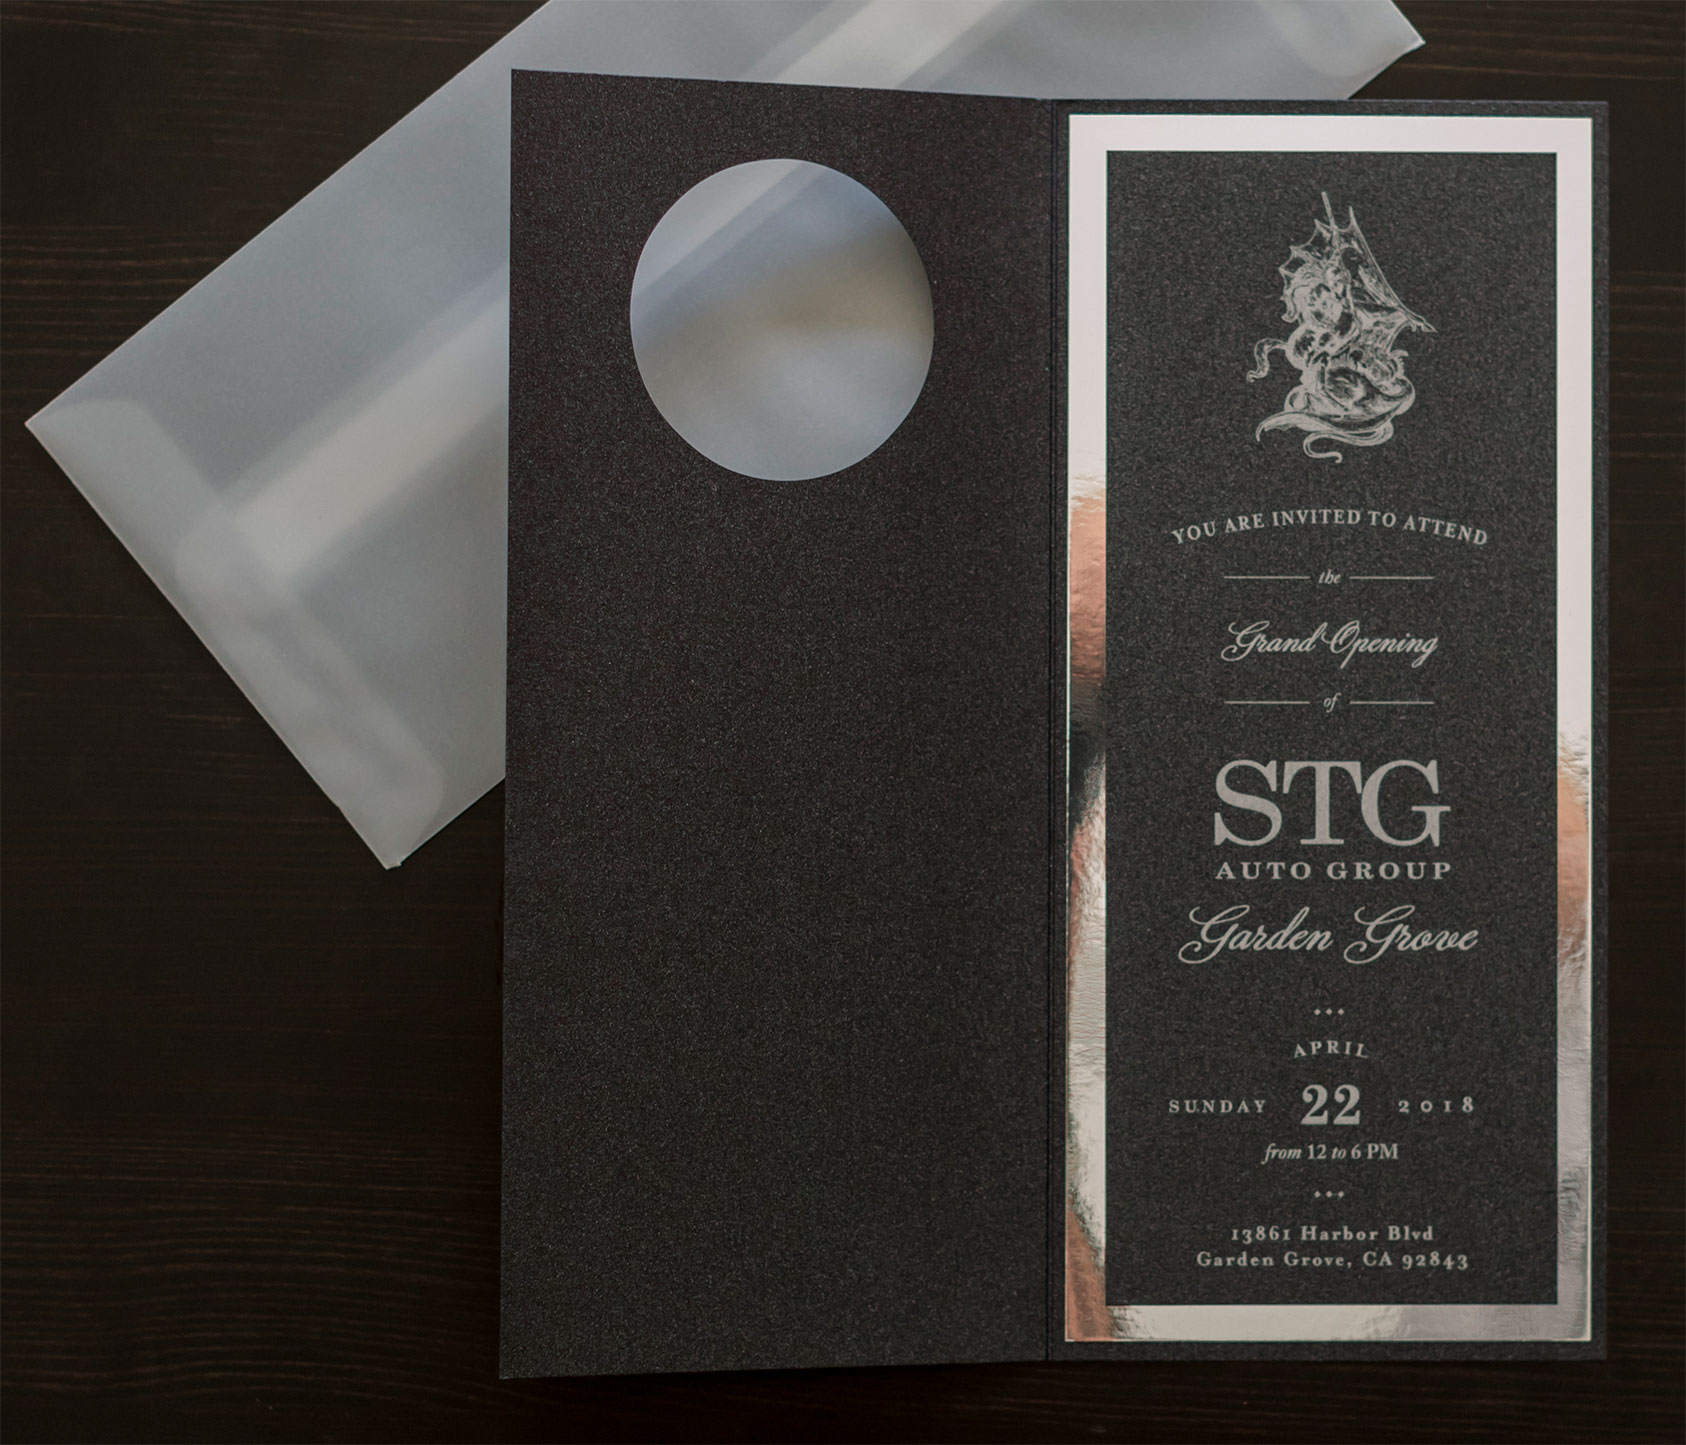 Garden Grove Grand Opening Invitations were printed on black shimmery paper with digital silver ink, layered with polished silver paper and custom die-cut black folded card. We used vellum envelopes so that the company logo could be seen through.